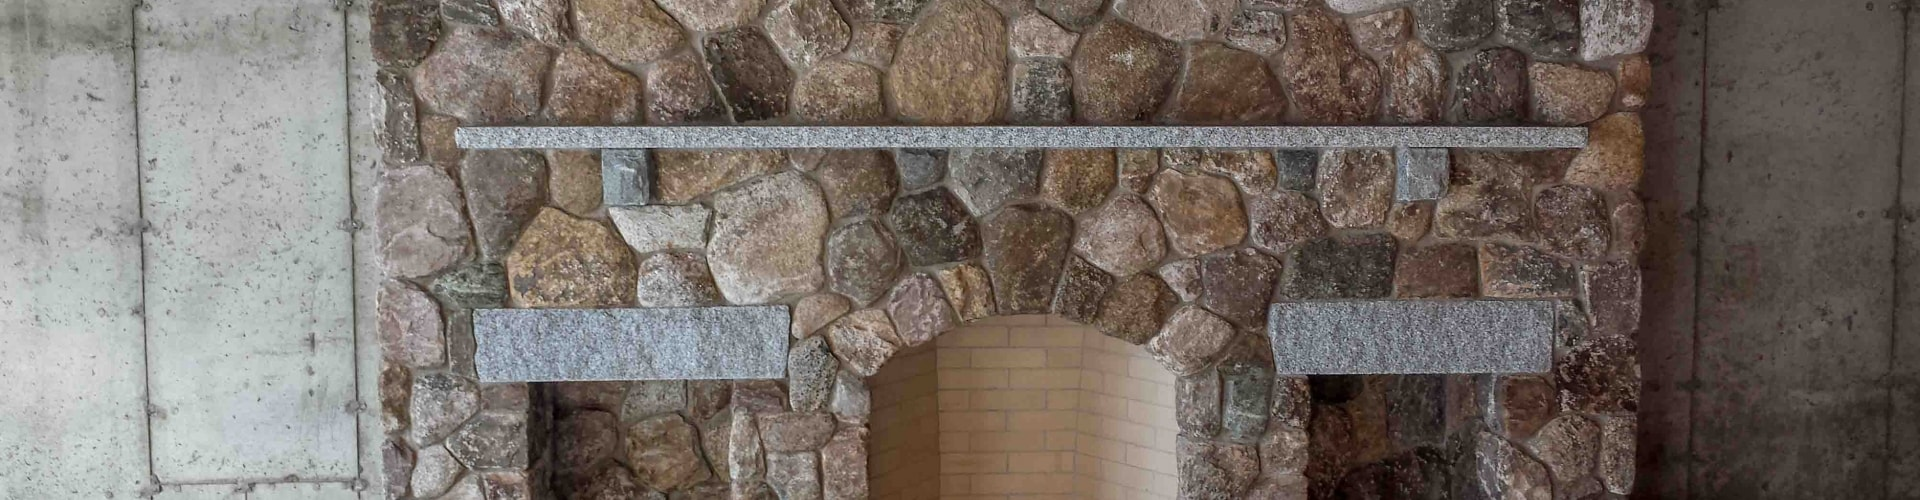 fieldstone-fireplace-min